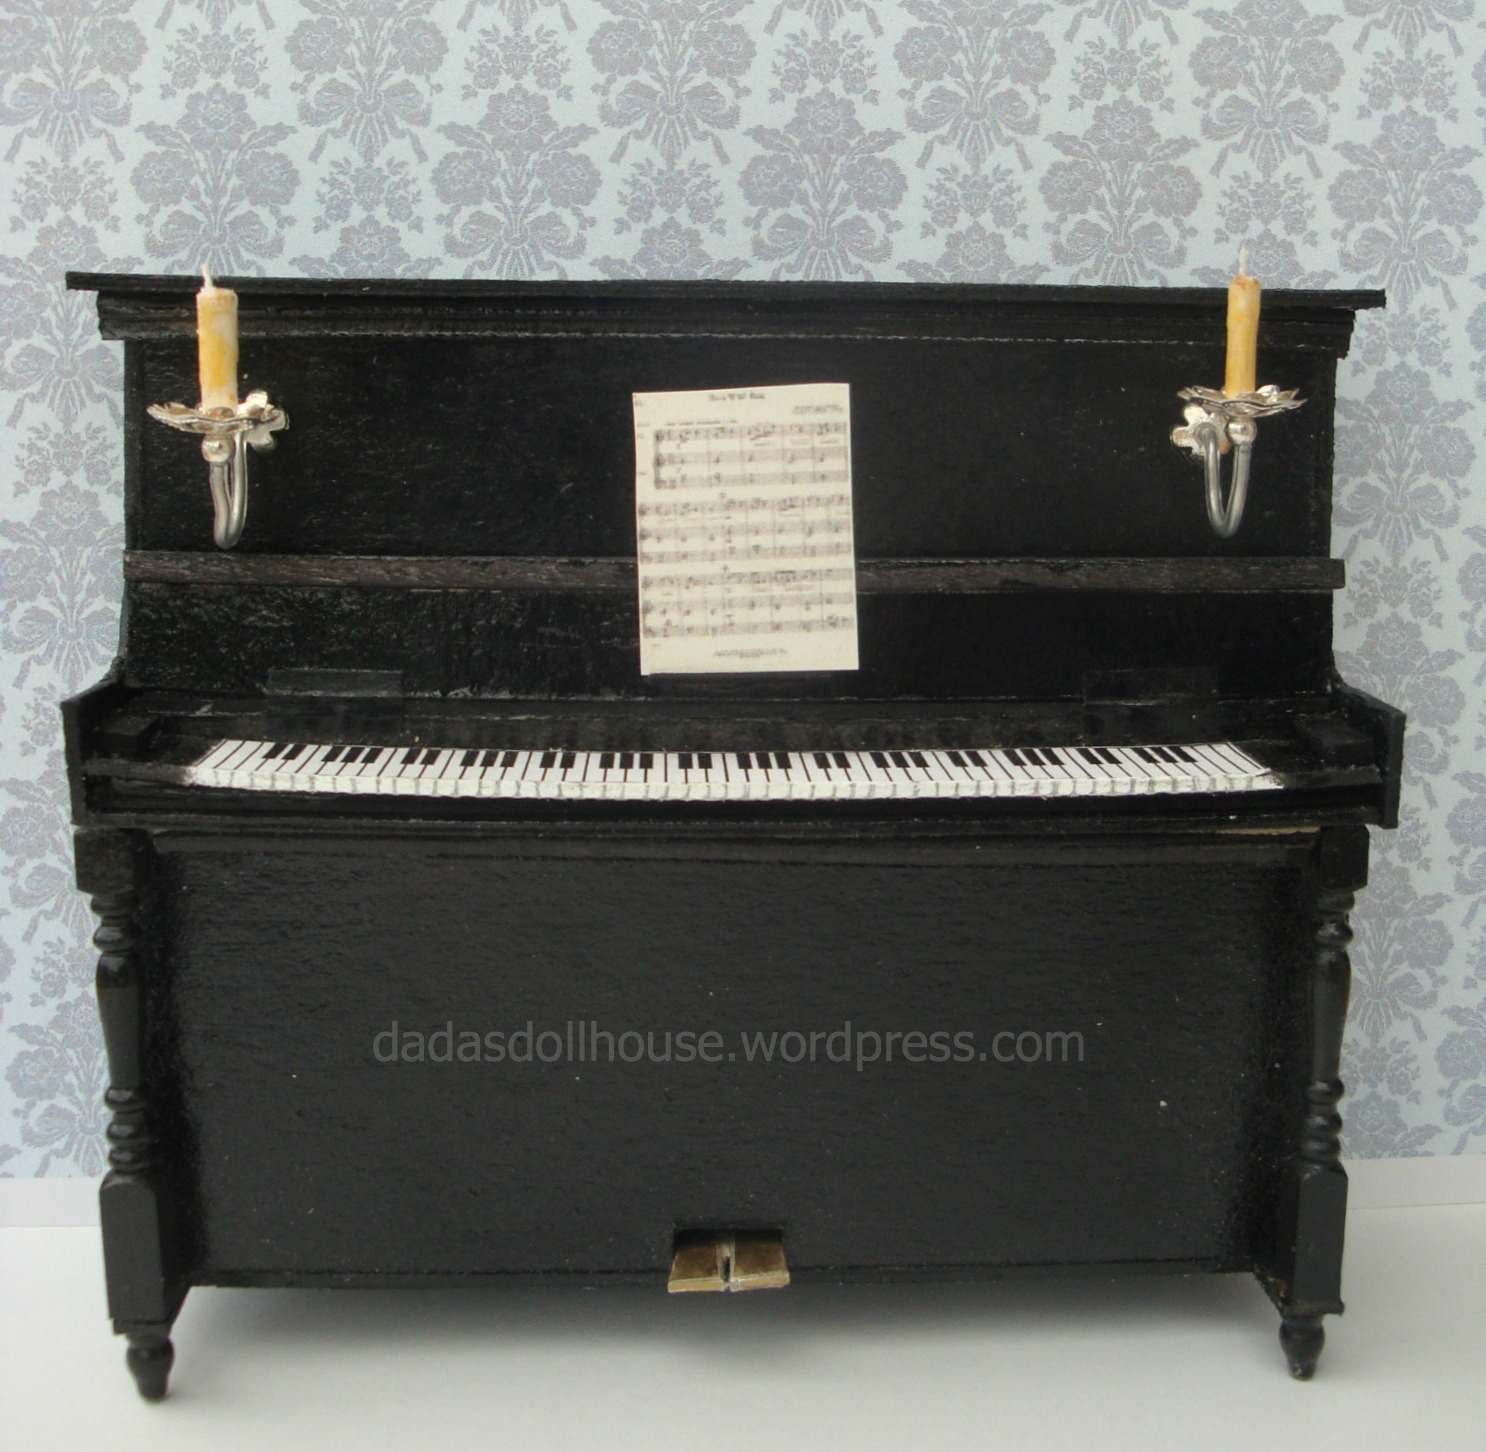 Arredare Con Pianoforte Verticale Il Pianoforte Verticale The Upright Piano Dada S Dollhouse